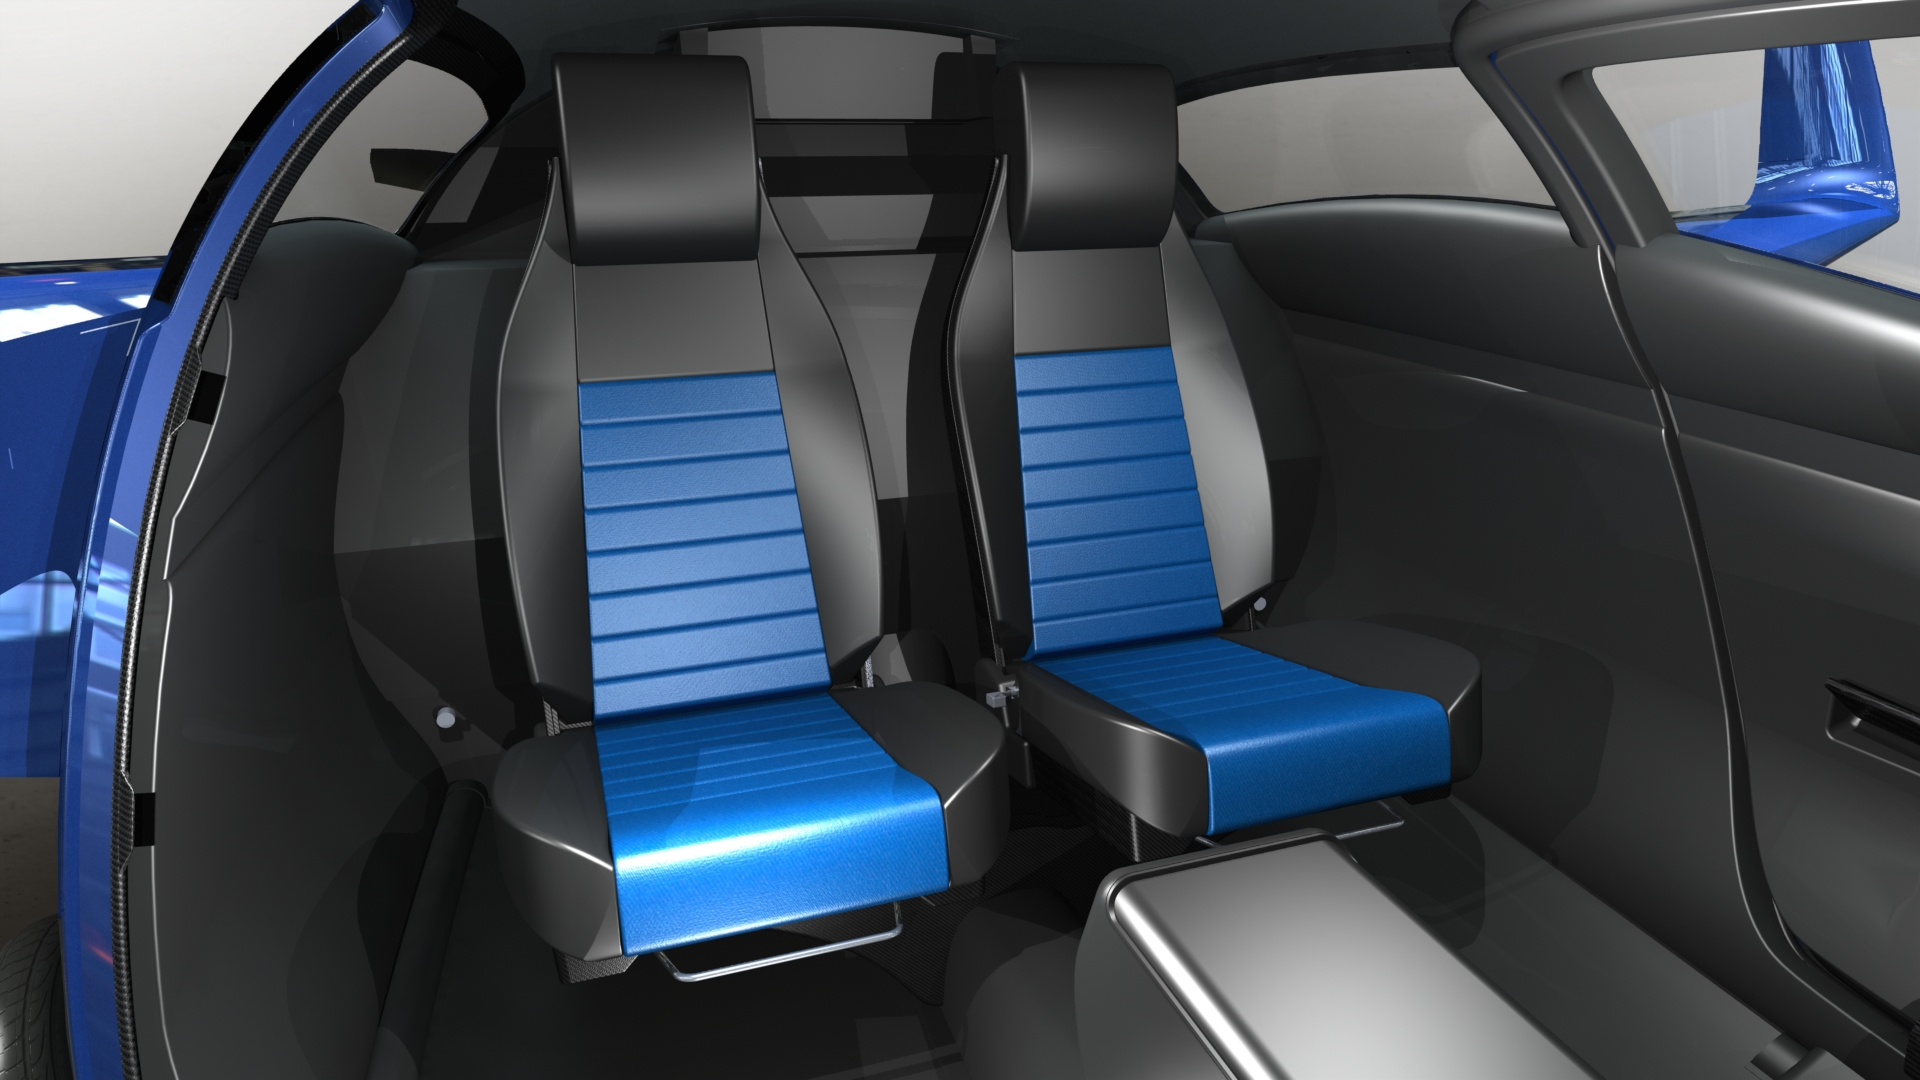 Raptor Aircraft Rear Seats